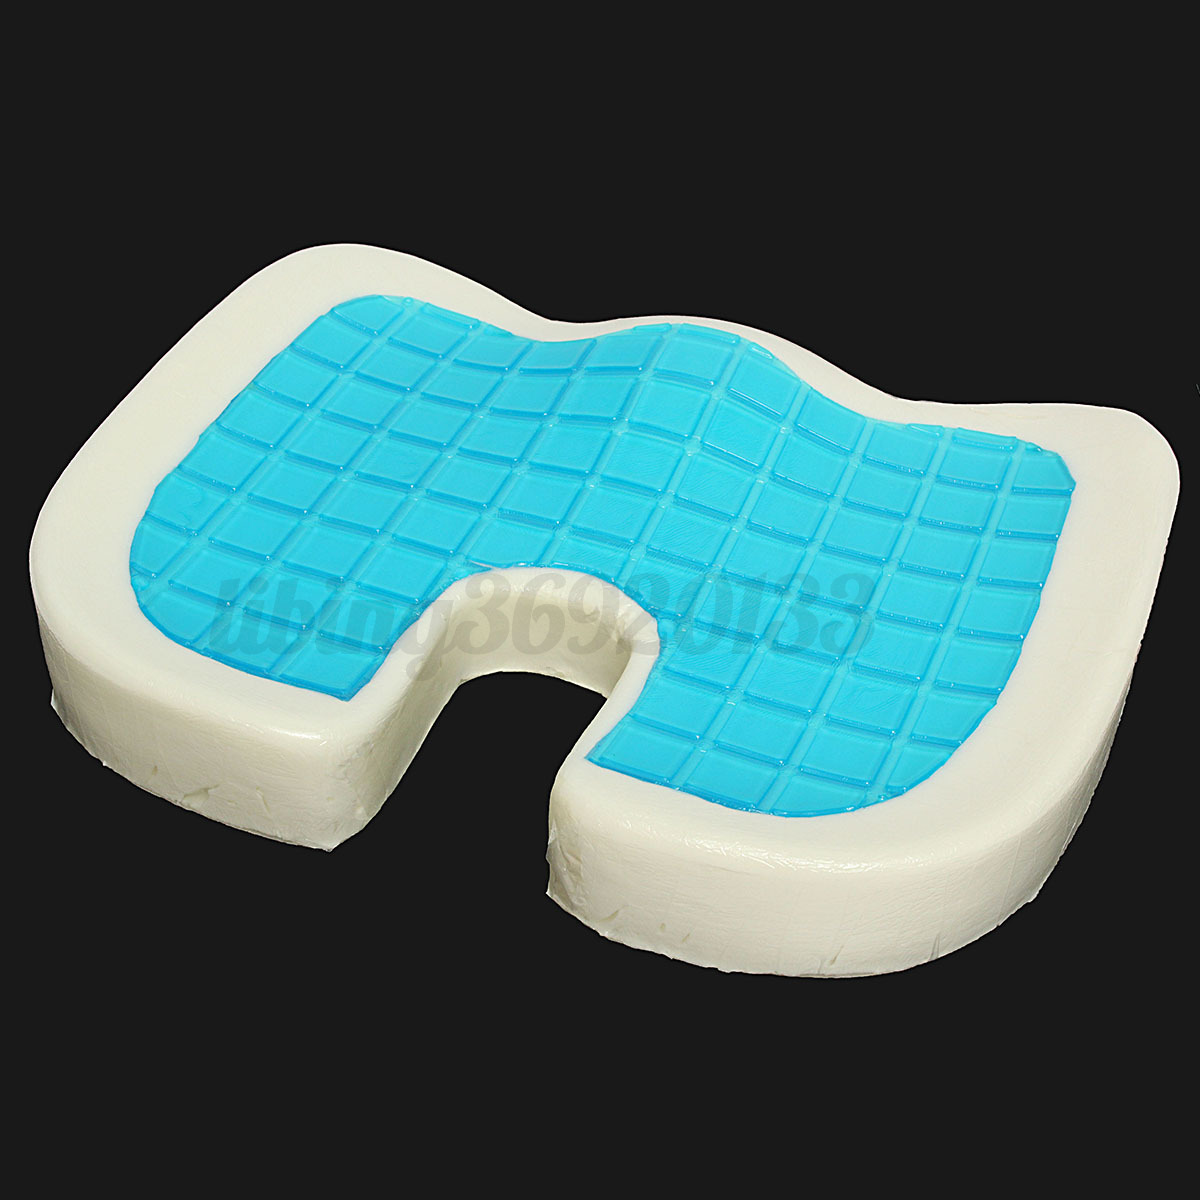 Gel Pad For Chair Coccyx Orthopedic Gel Enhanced Comfort Memory Foam Seat